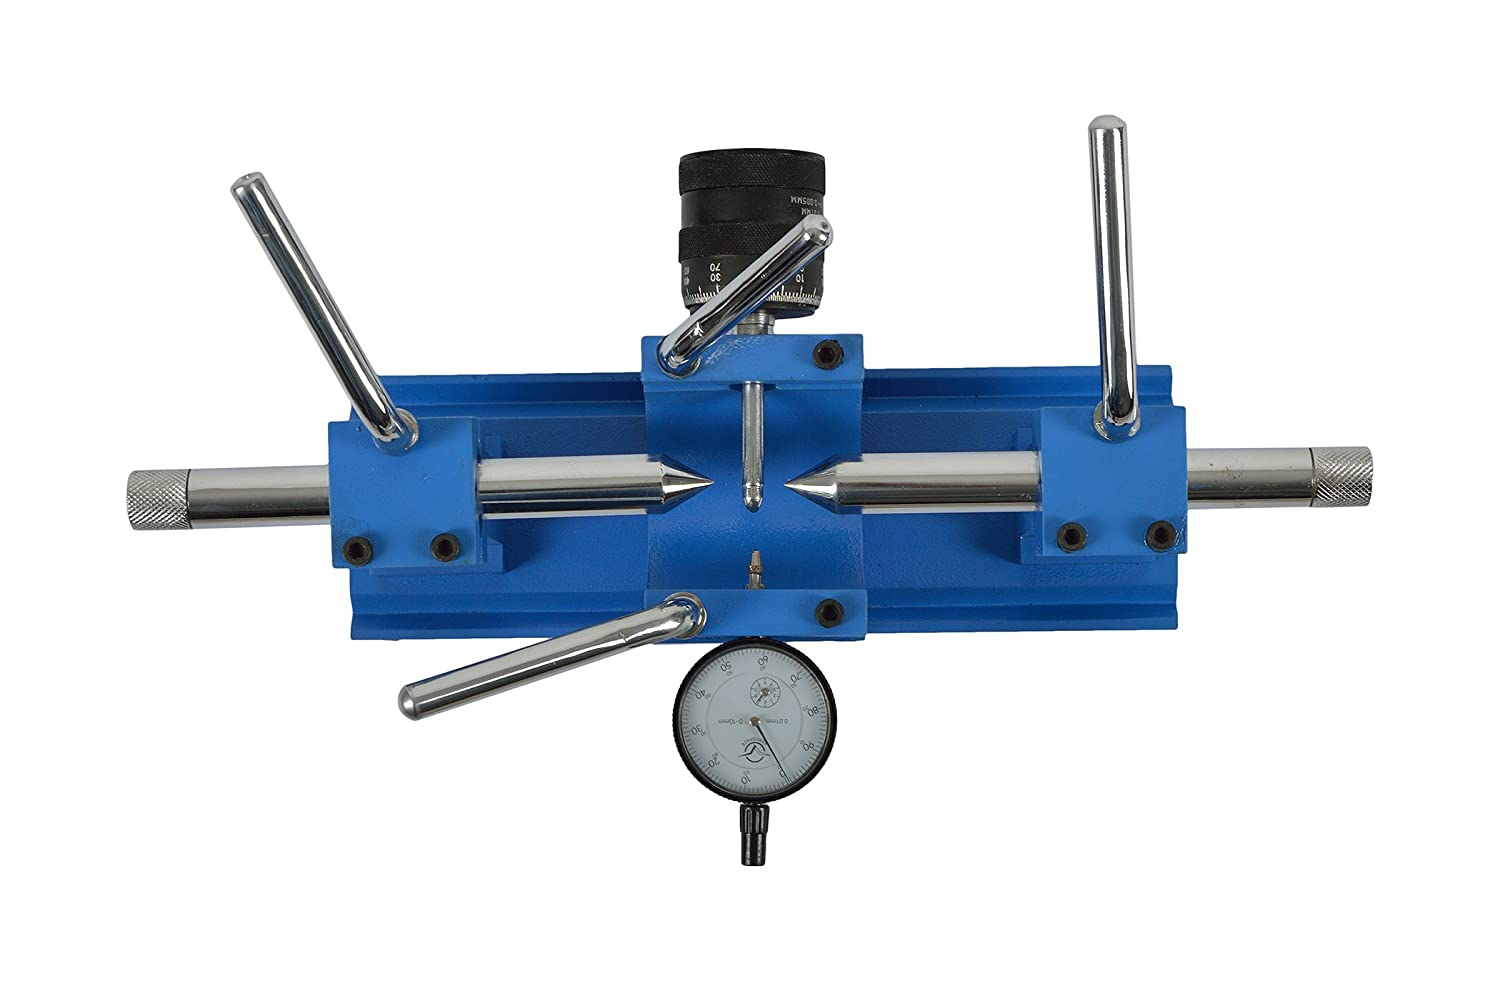 ELSHADDAI Floating Carriage Micrometer (Blue): Amazon in